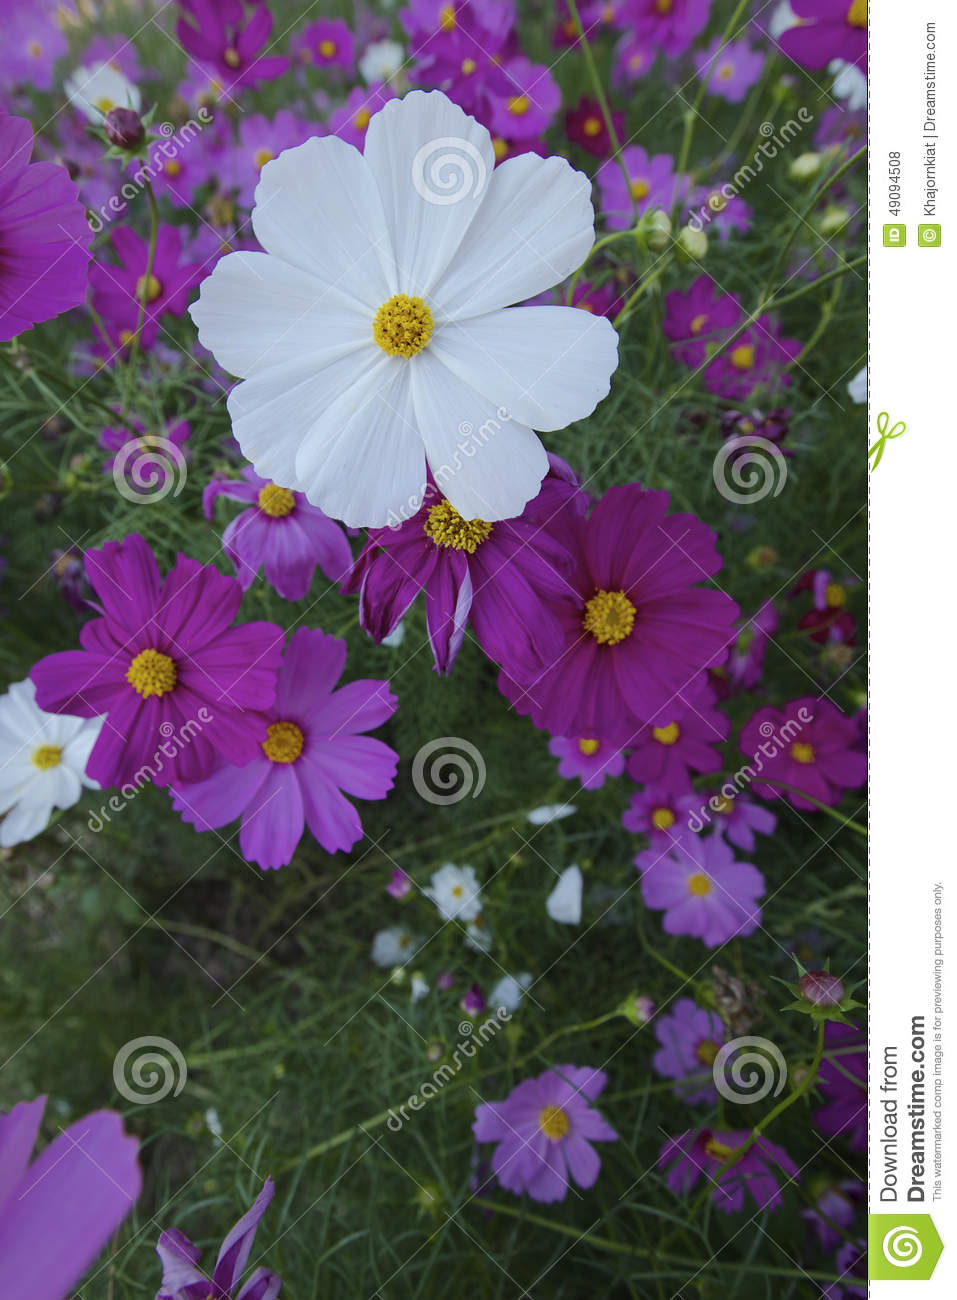 Cosmos Flowers Stock Photo Image Of Perennial Formal 49094508